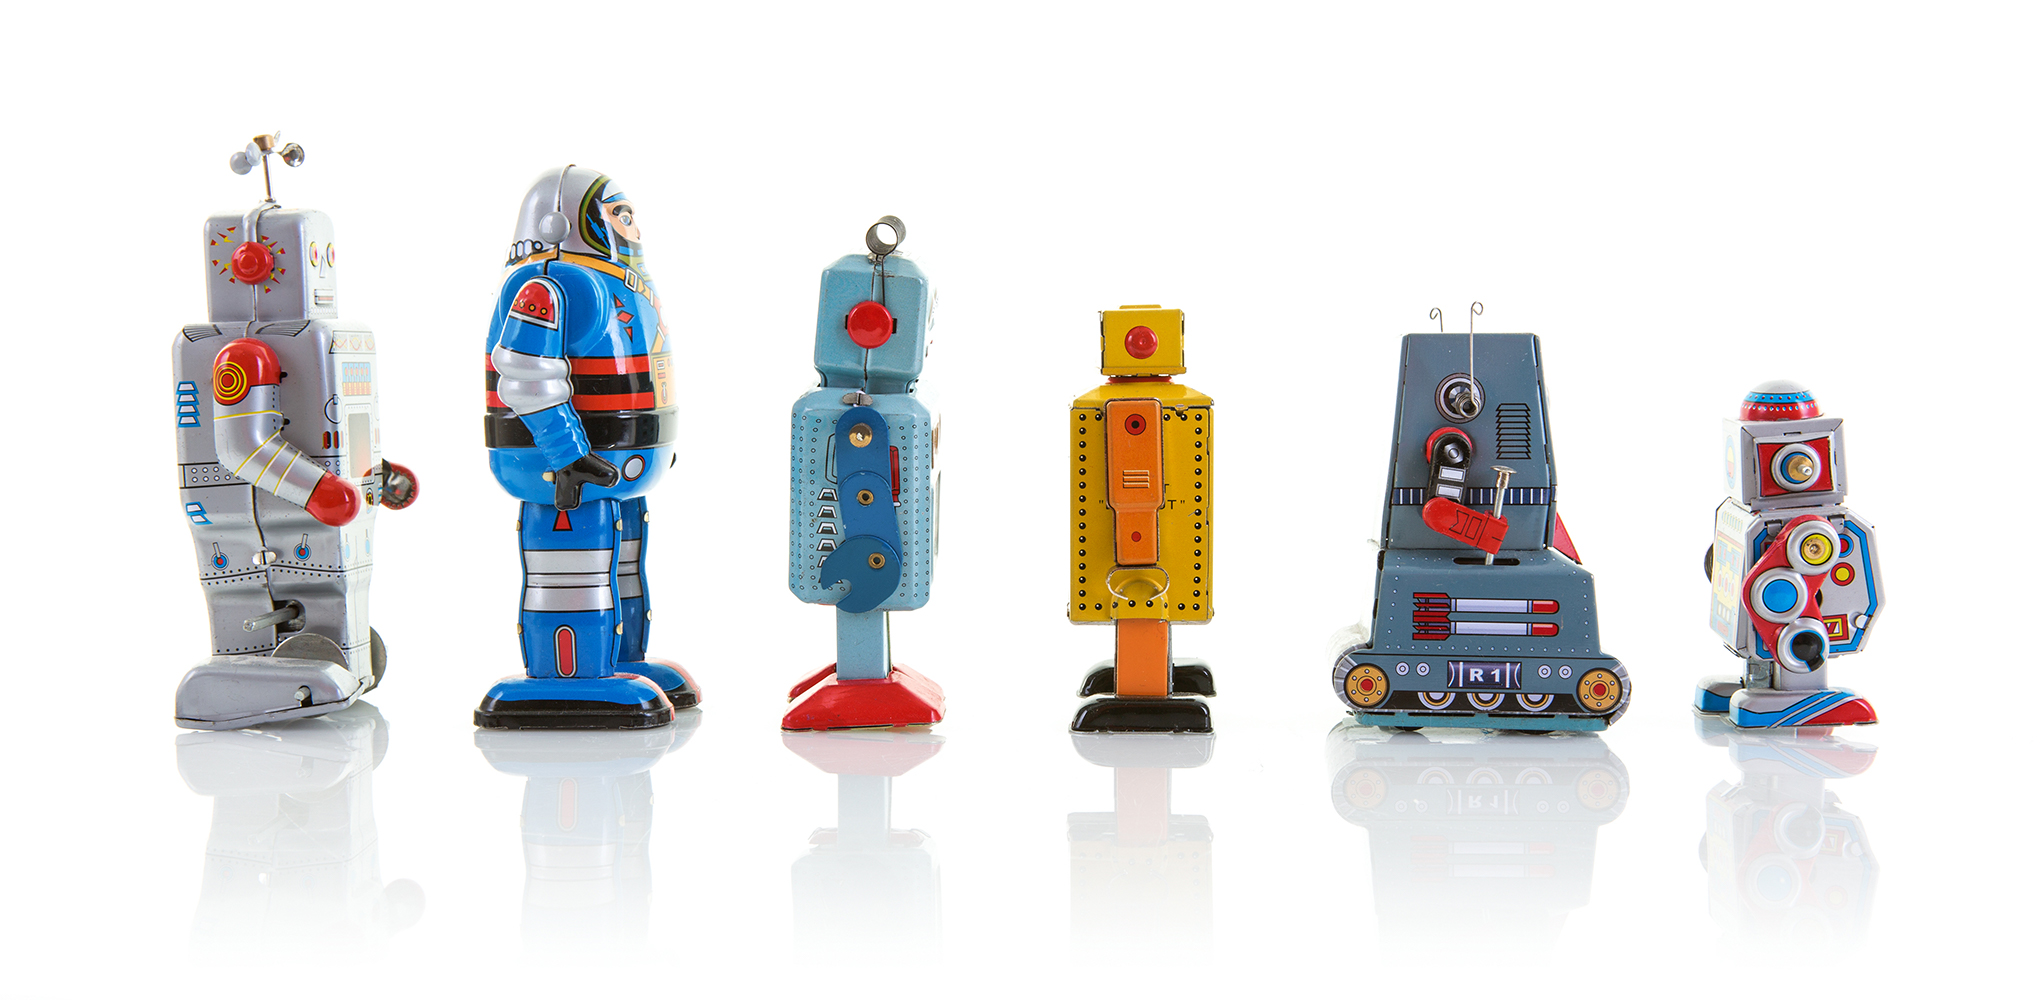 image of robots lined up